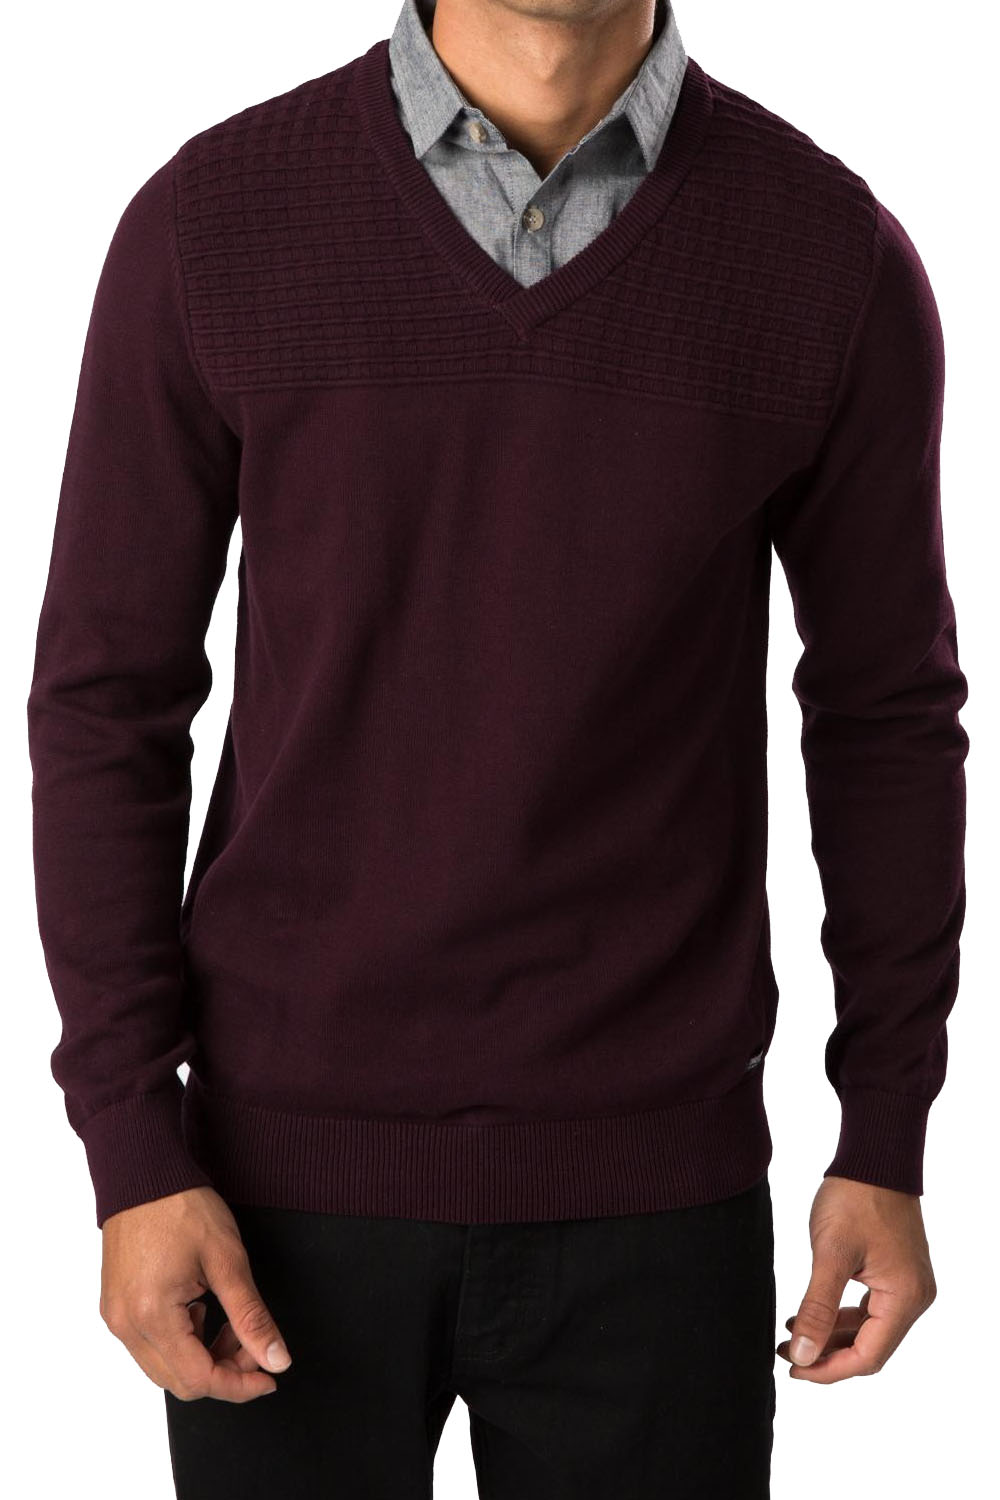 Men's Mock Turtleneck Sweaters. Showing 40 of results that match your query. Search Product Result. Devon & Jones Classic Men's V-Neck Sweater, Style D Product Image. Price $ Product Title. Clothing, Electronics and Health & Beauty. Marketplace items.